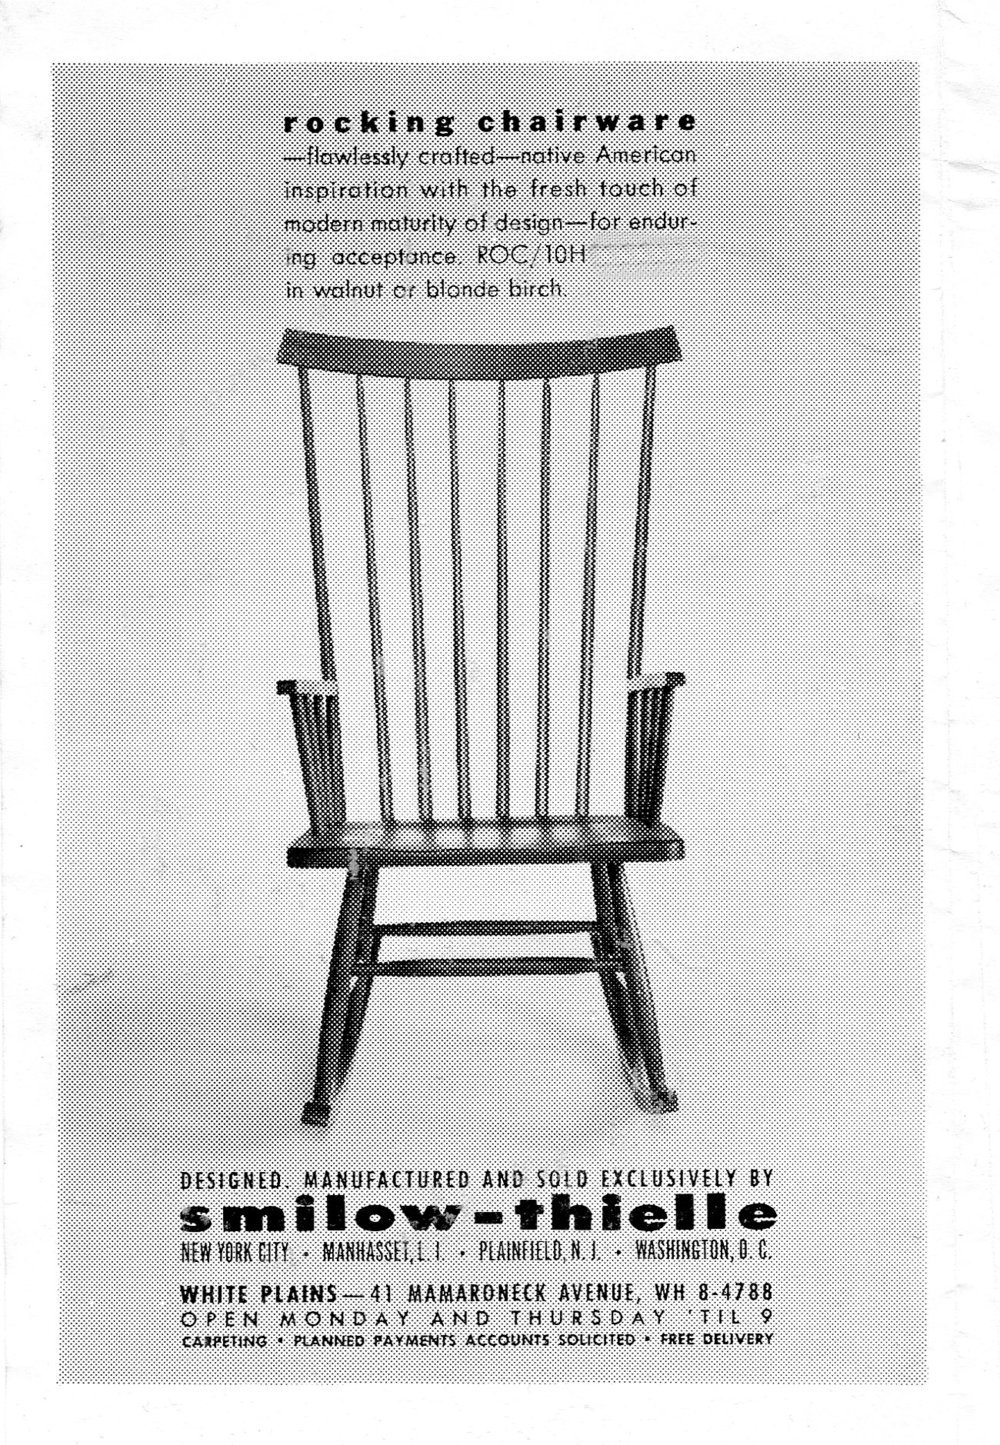 mel smilow Rocking Chair Vintage Advertisement.jpg